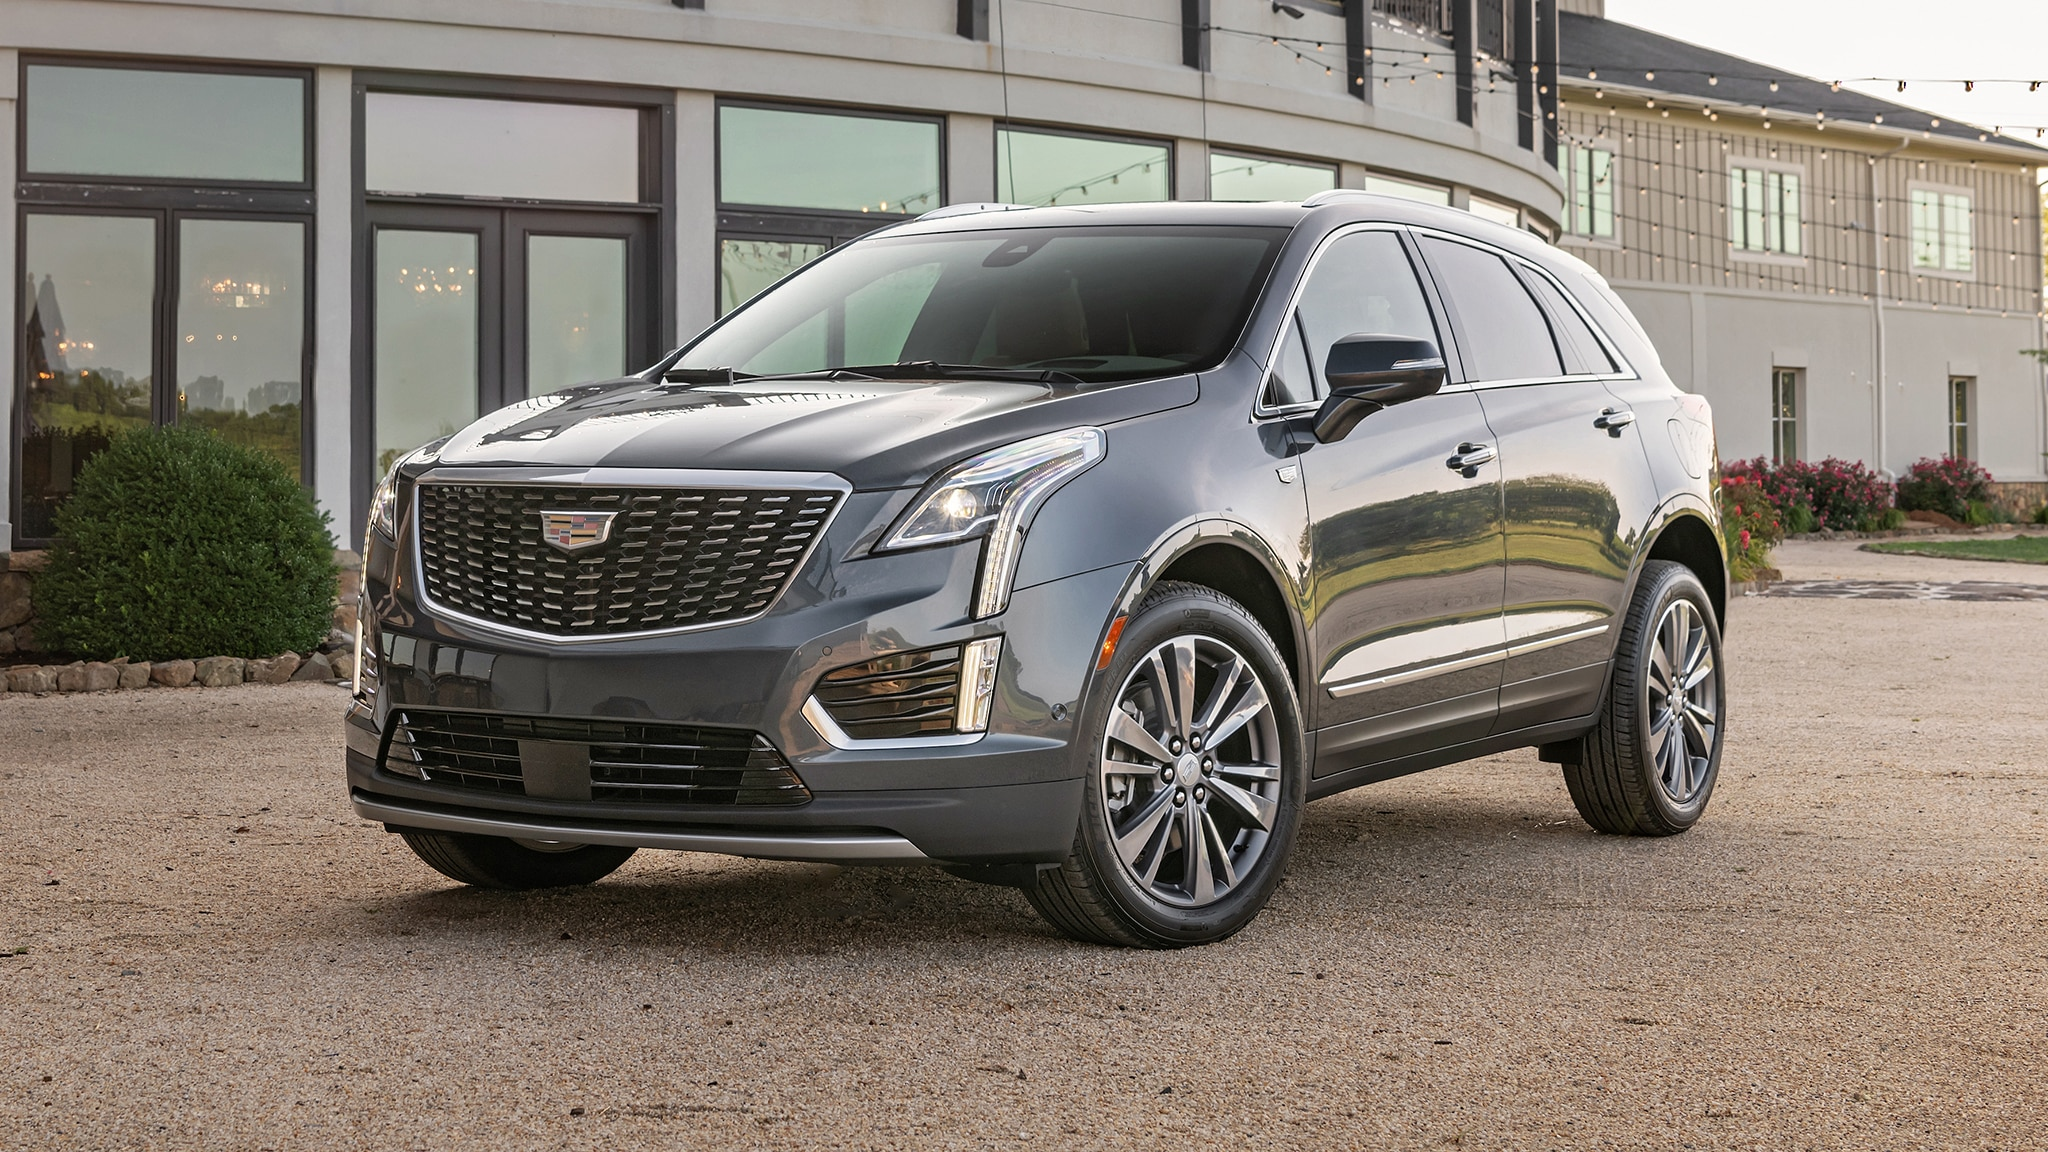 2020 Cadillac XT5: Here's What's New | Automobile Magazine